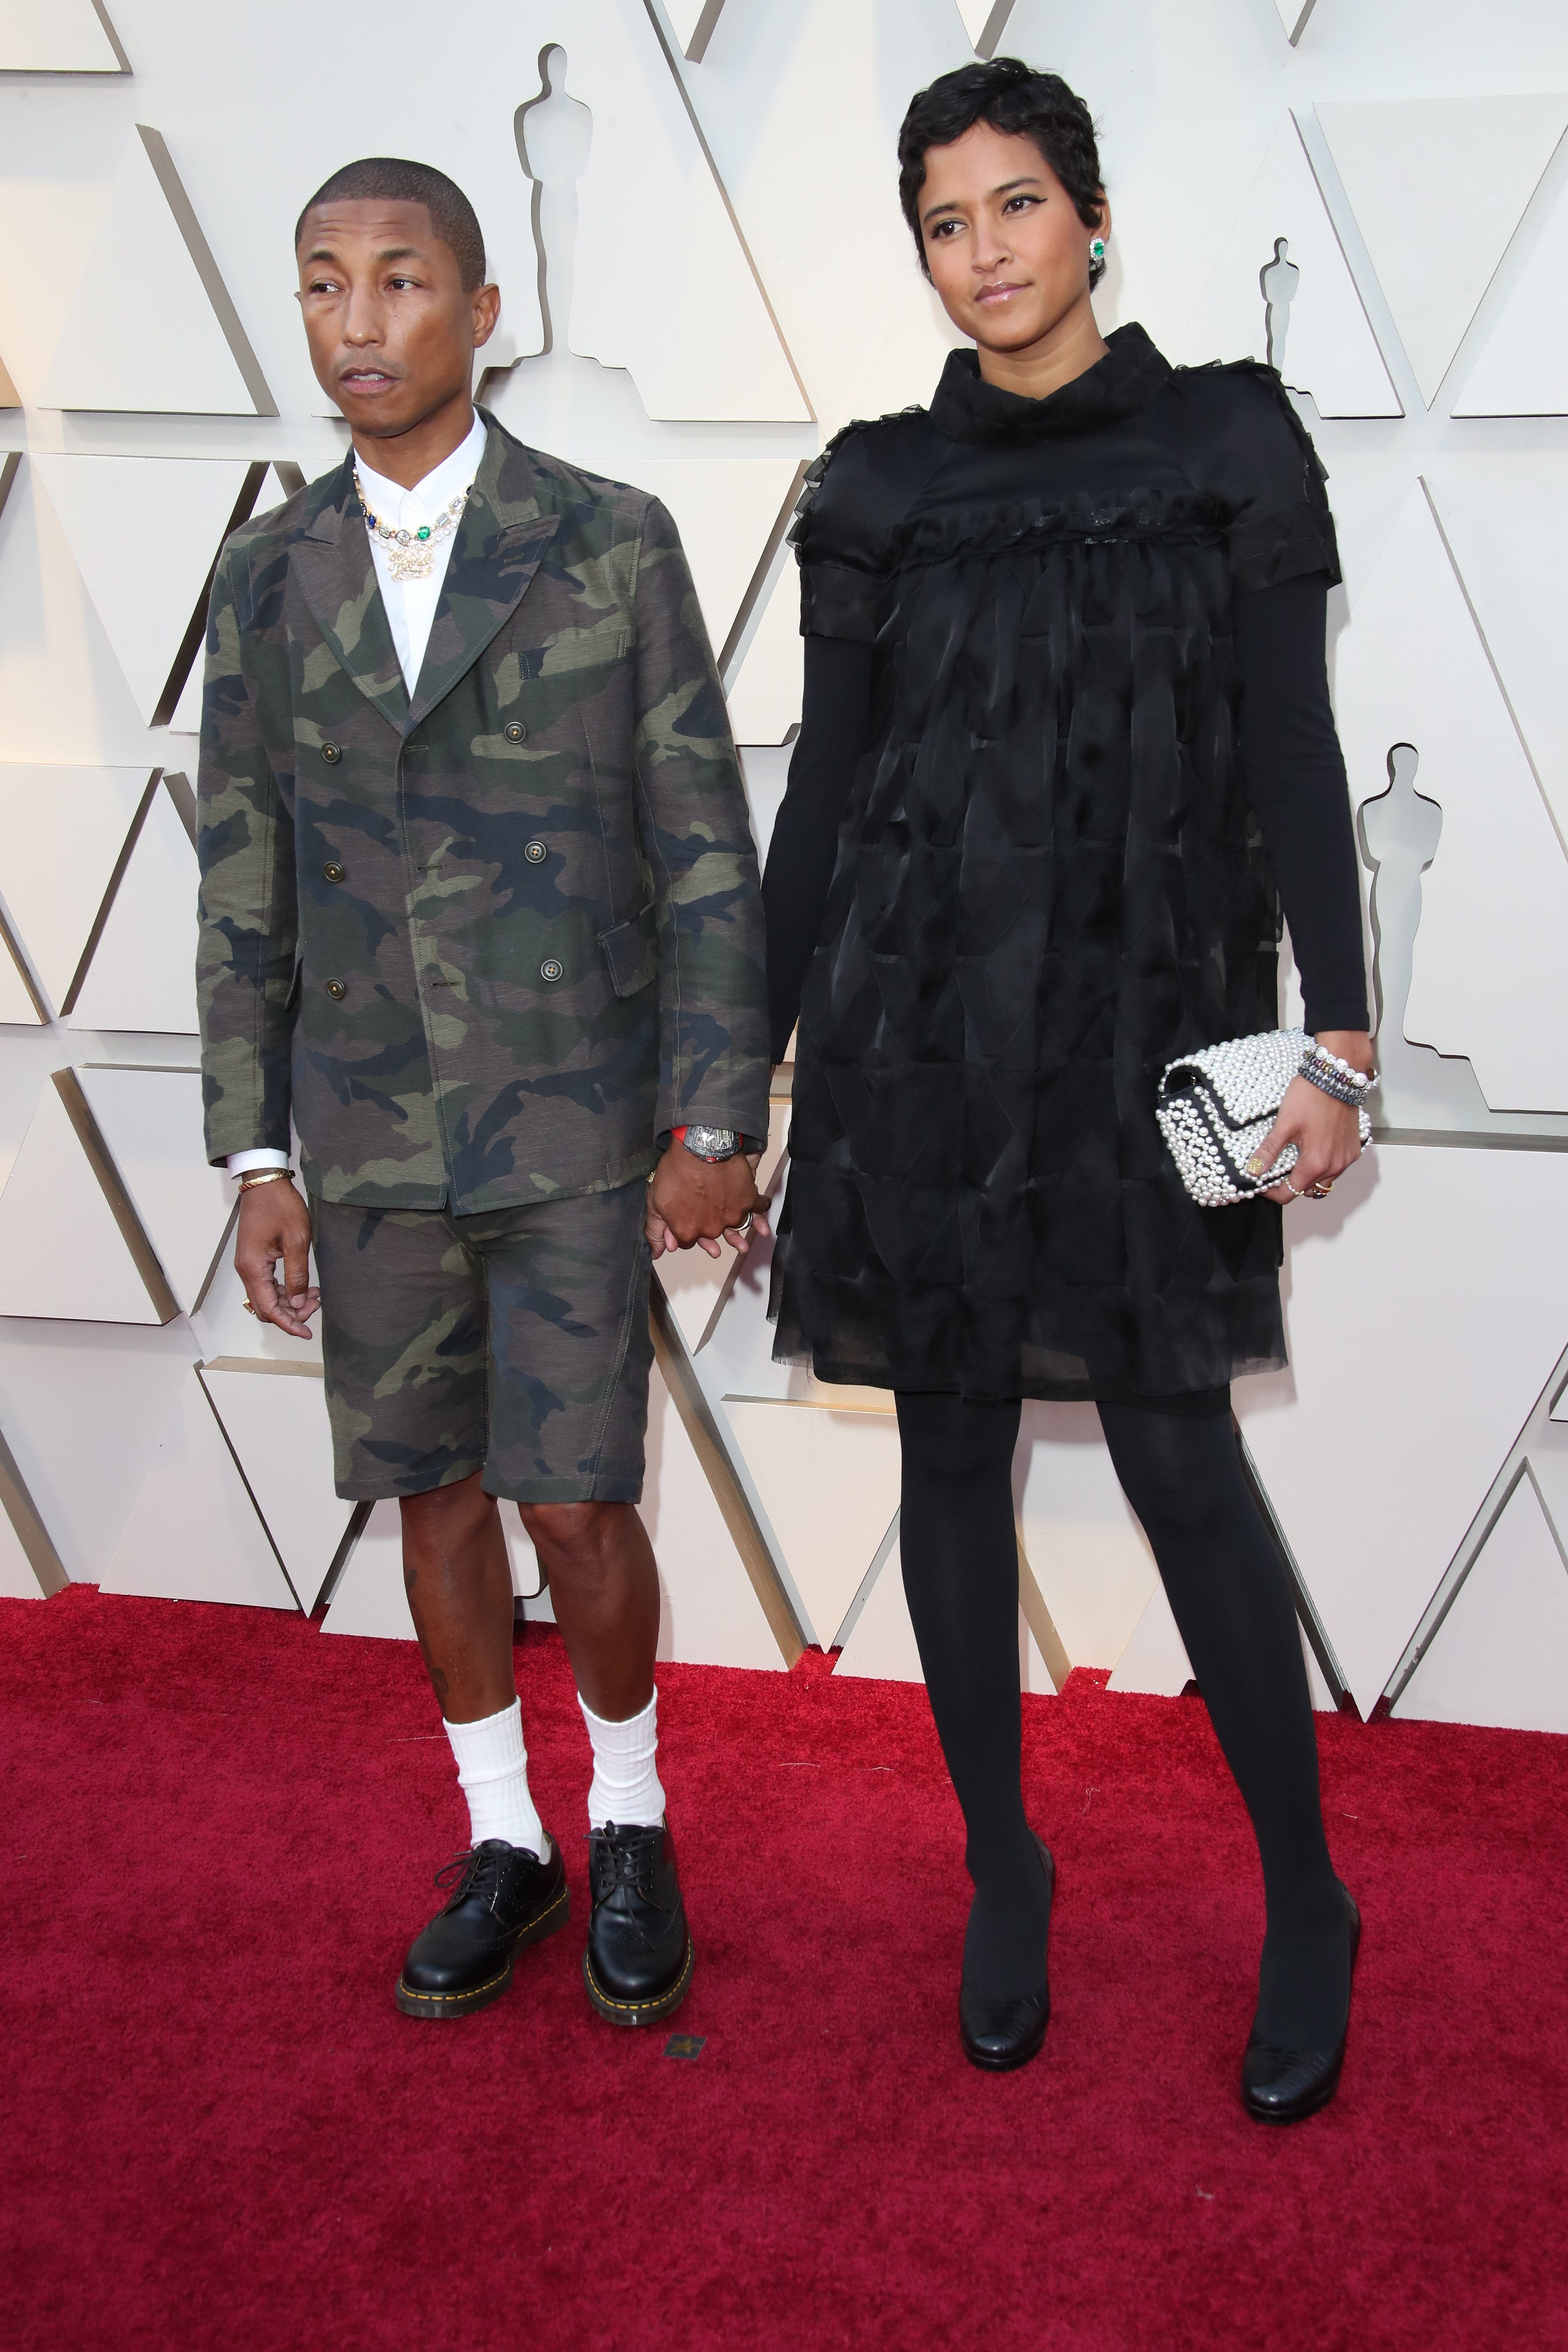 February 24, 2019; Los Angeles, CA, USA; Pharrell Williams, left, and Helen Lasichanh arrive at the 91st Academy Awards at the Dolby Theatre. Mandatory Credit: Dan MacMedan-USA TODAY NETWORK (Via OlyDrop)